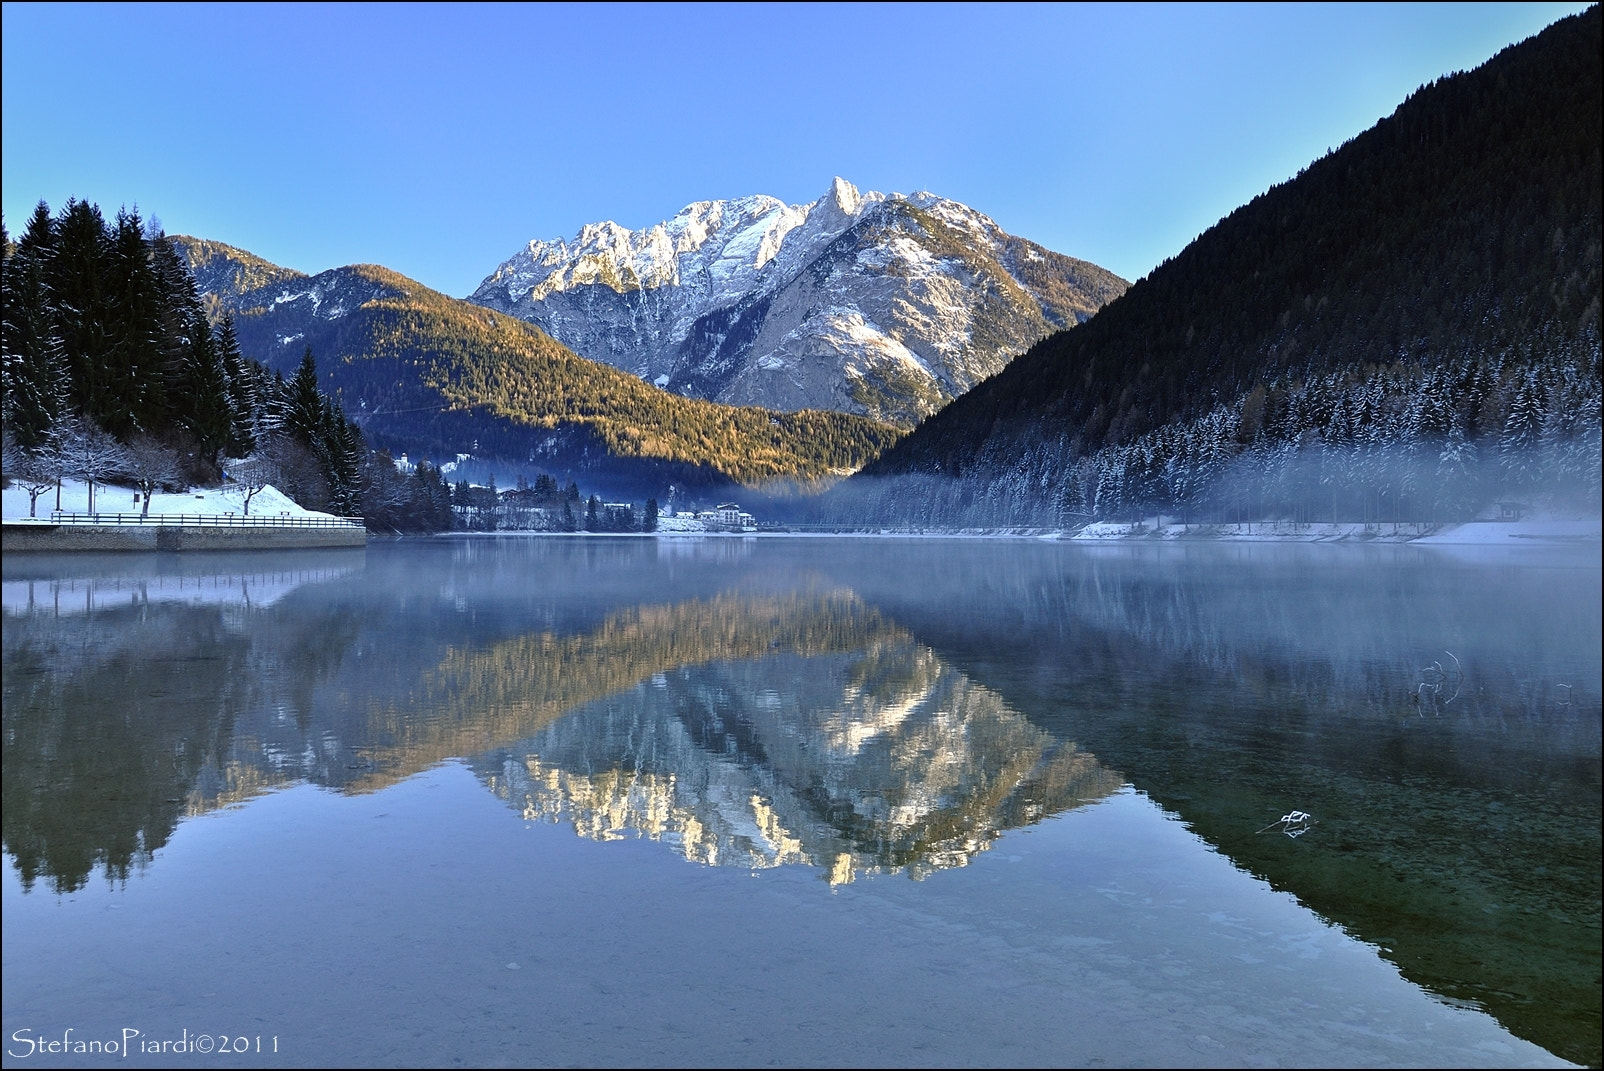 Photograph Equilibrium by Stefano Piardi on 500px